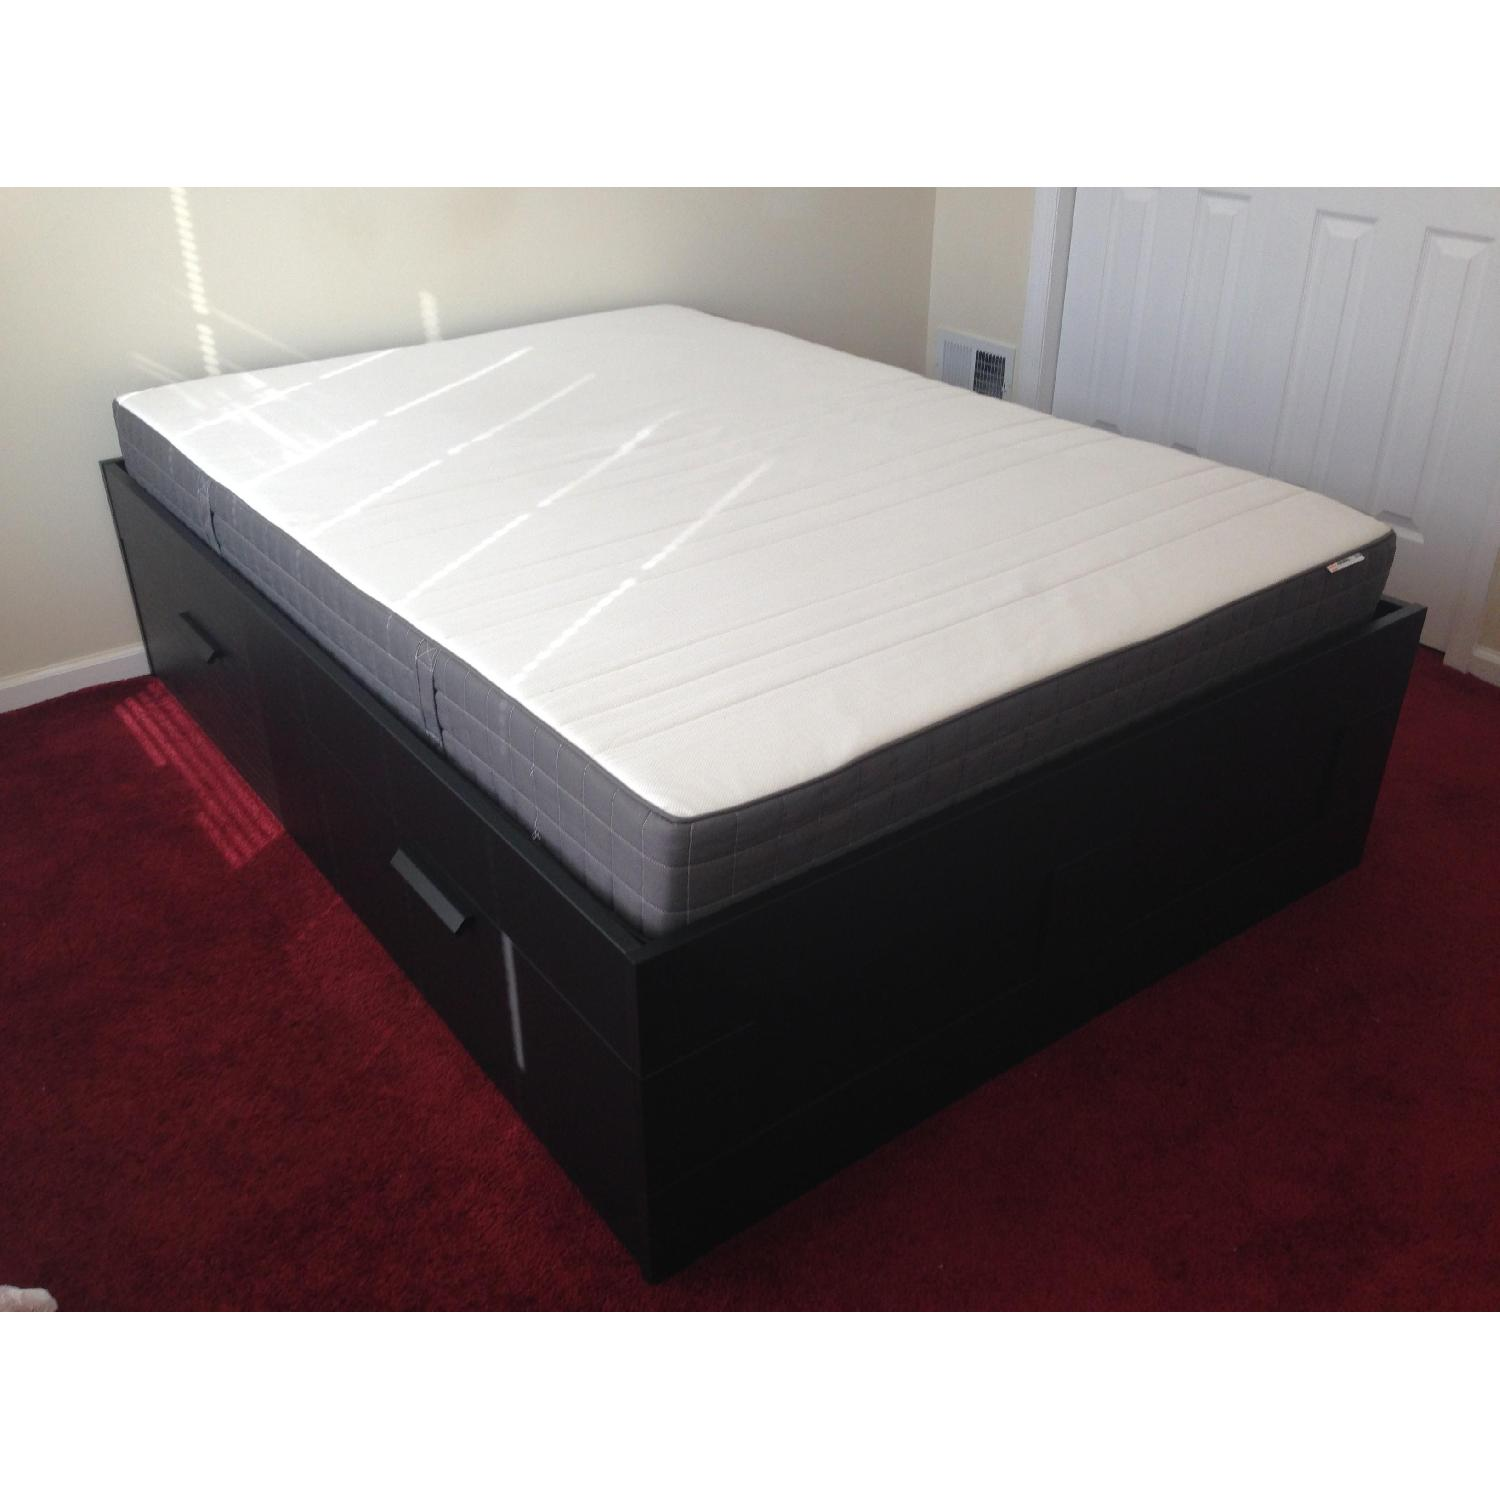 Ikea Brimnes Captains Full Size Bed w/ 4 Drawers - image-1